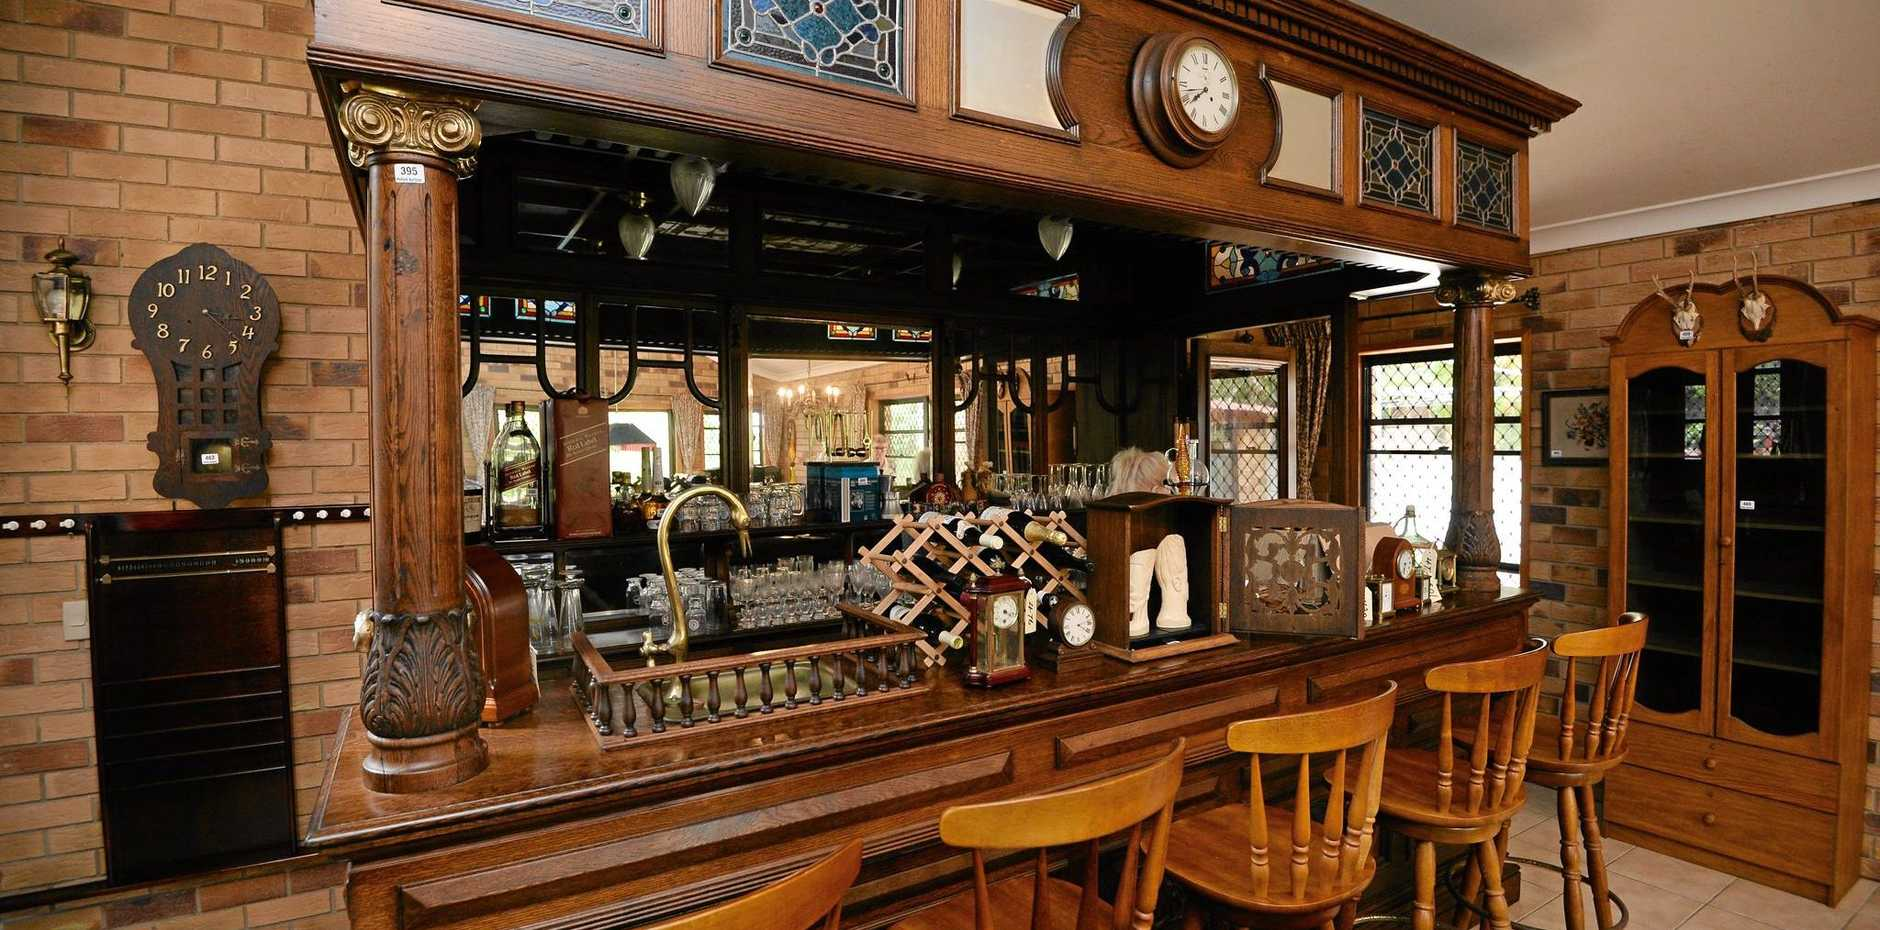 This unique bar could fetch up to $50,000 in today's giant antique auction.